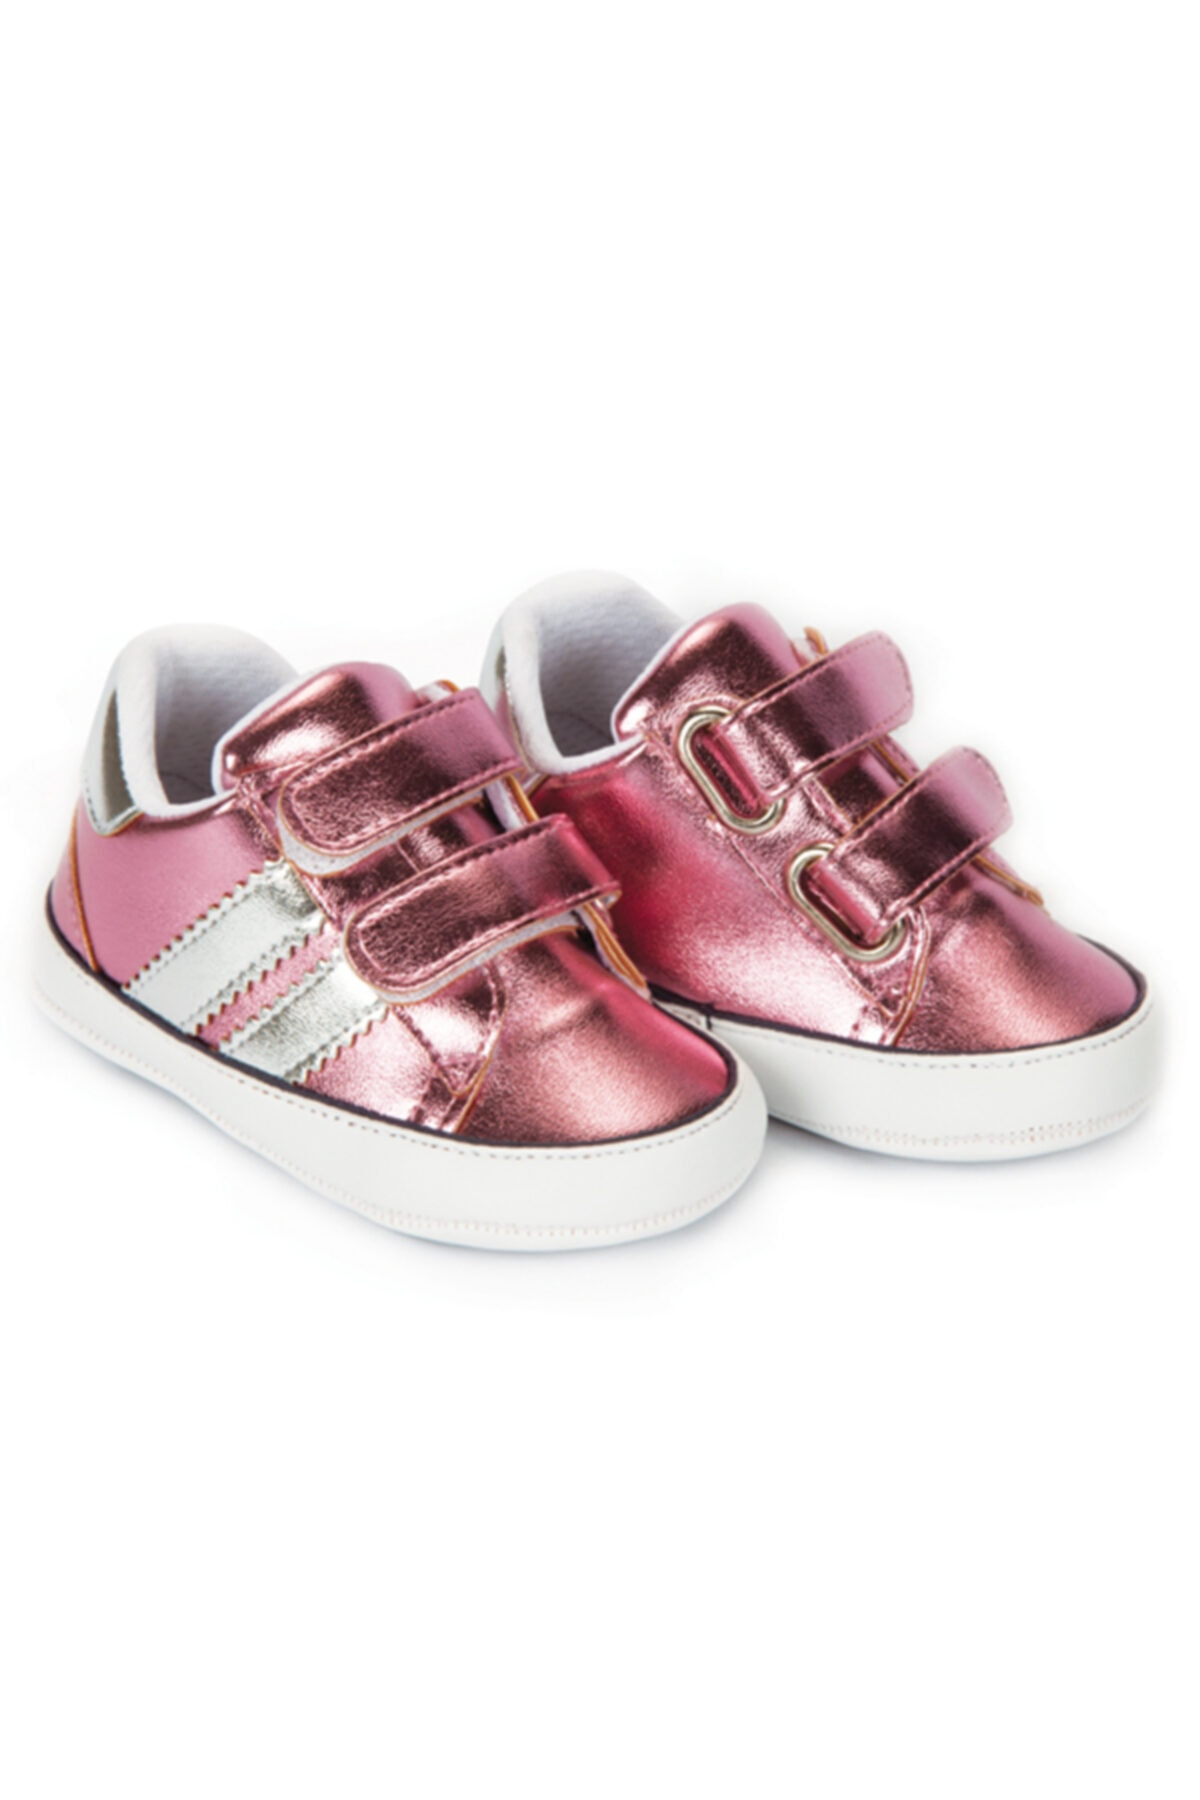 Flaneur Baby Girl Pink Casual Shoes 2021 Premium Quality